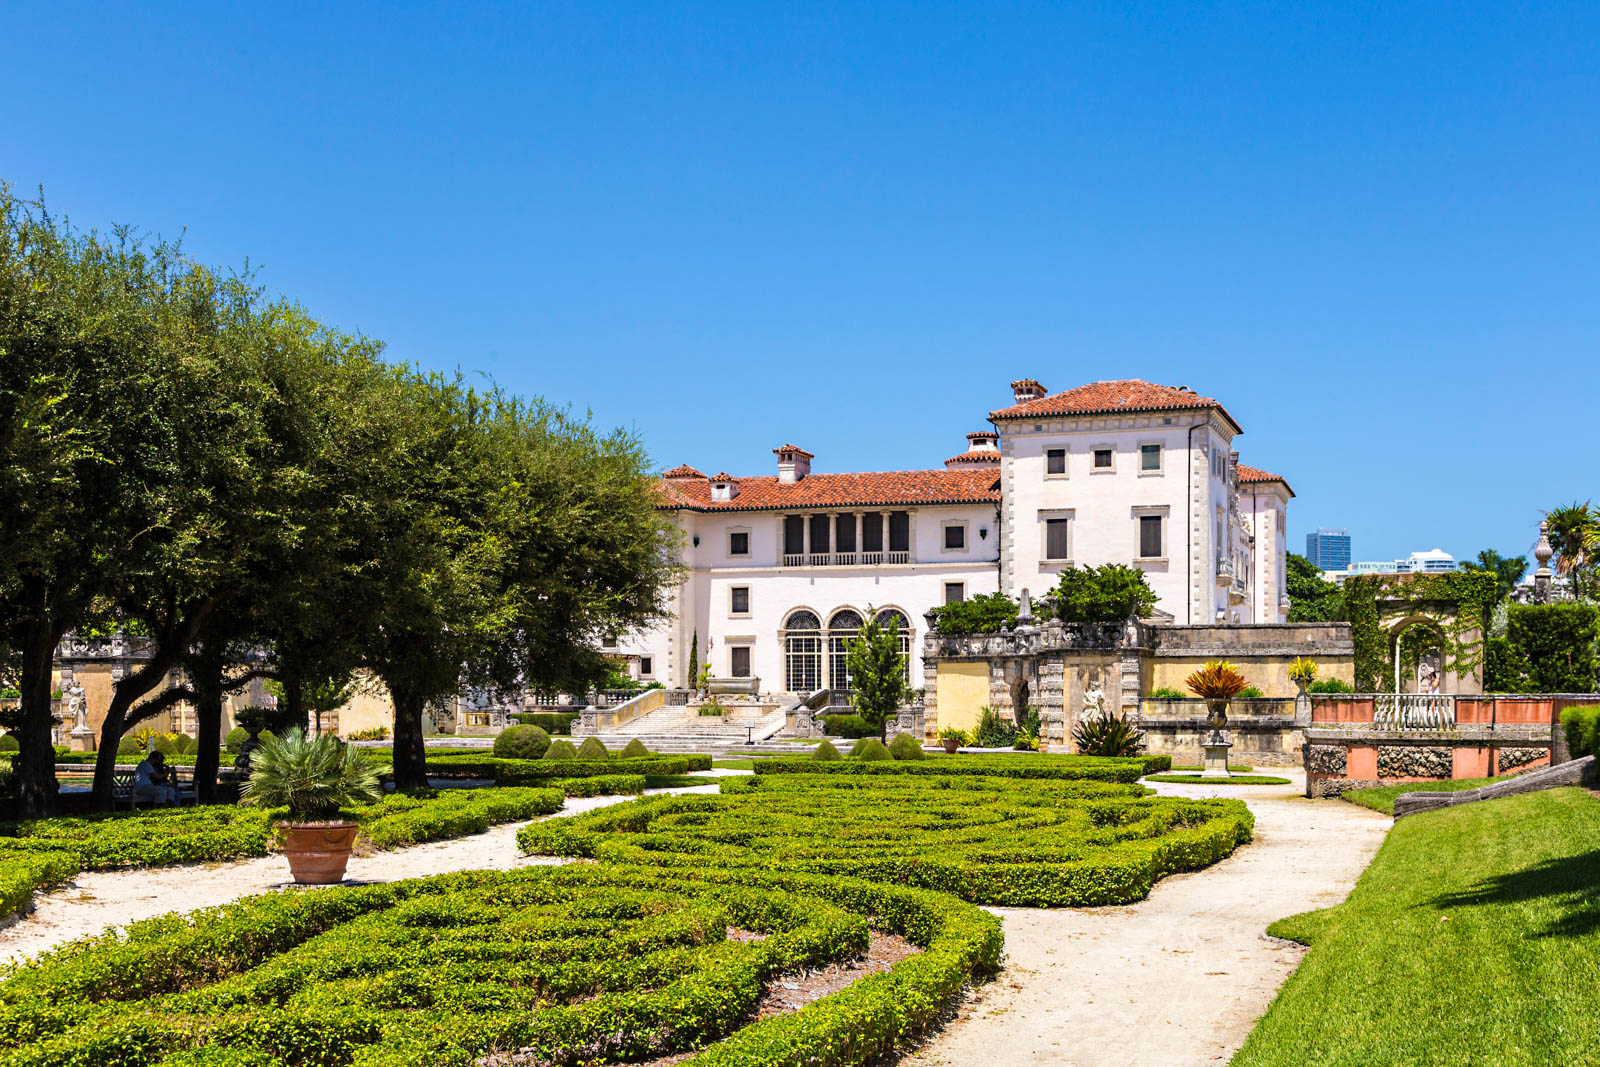 The Vizcaya Mansion is the grandest in all of Florida. It is one of the most intriguing places to visit in Florida / Miami and a cool places to visit in Florida.